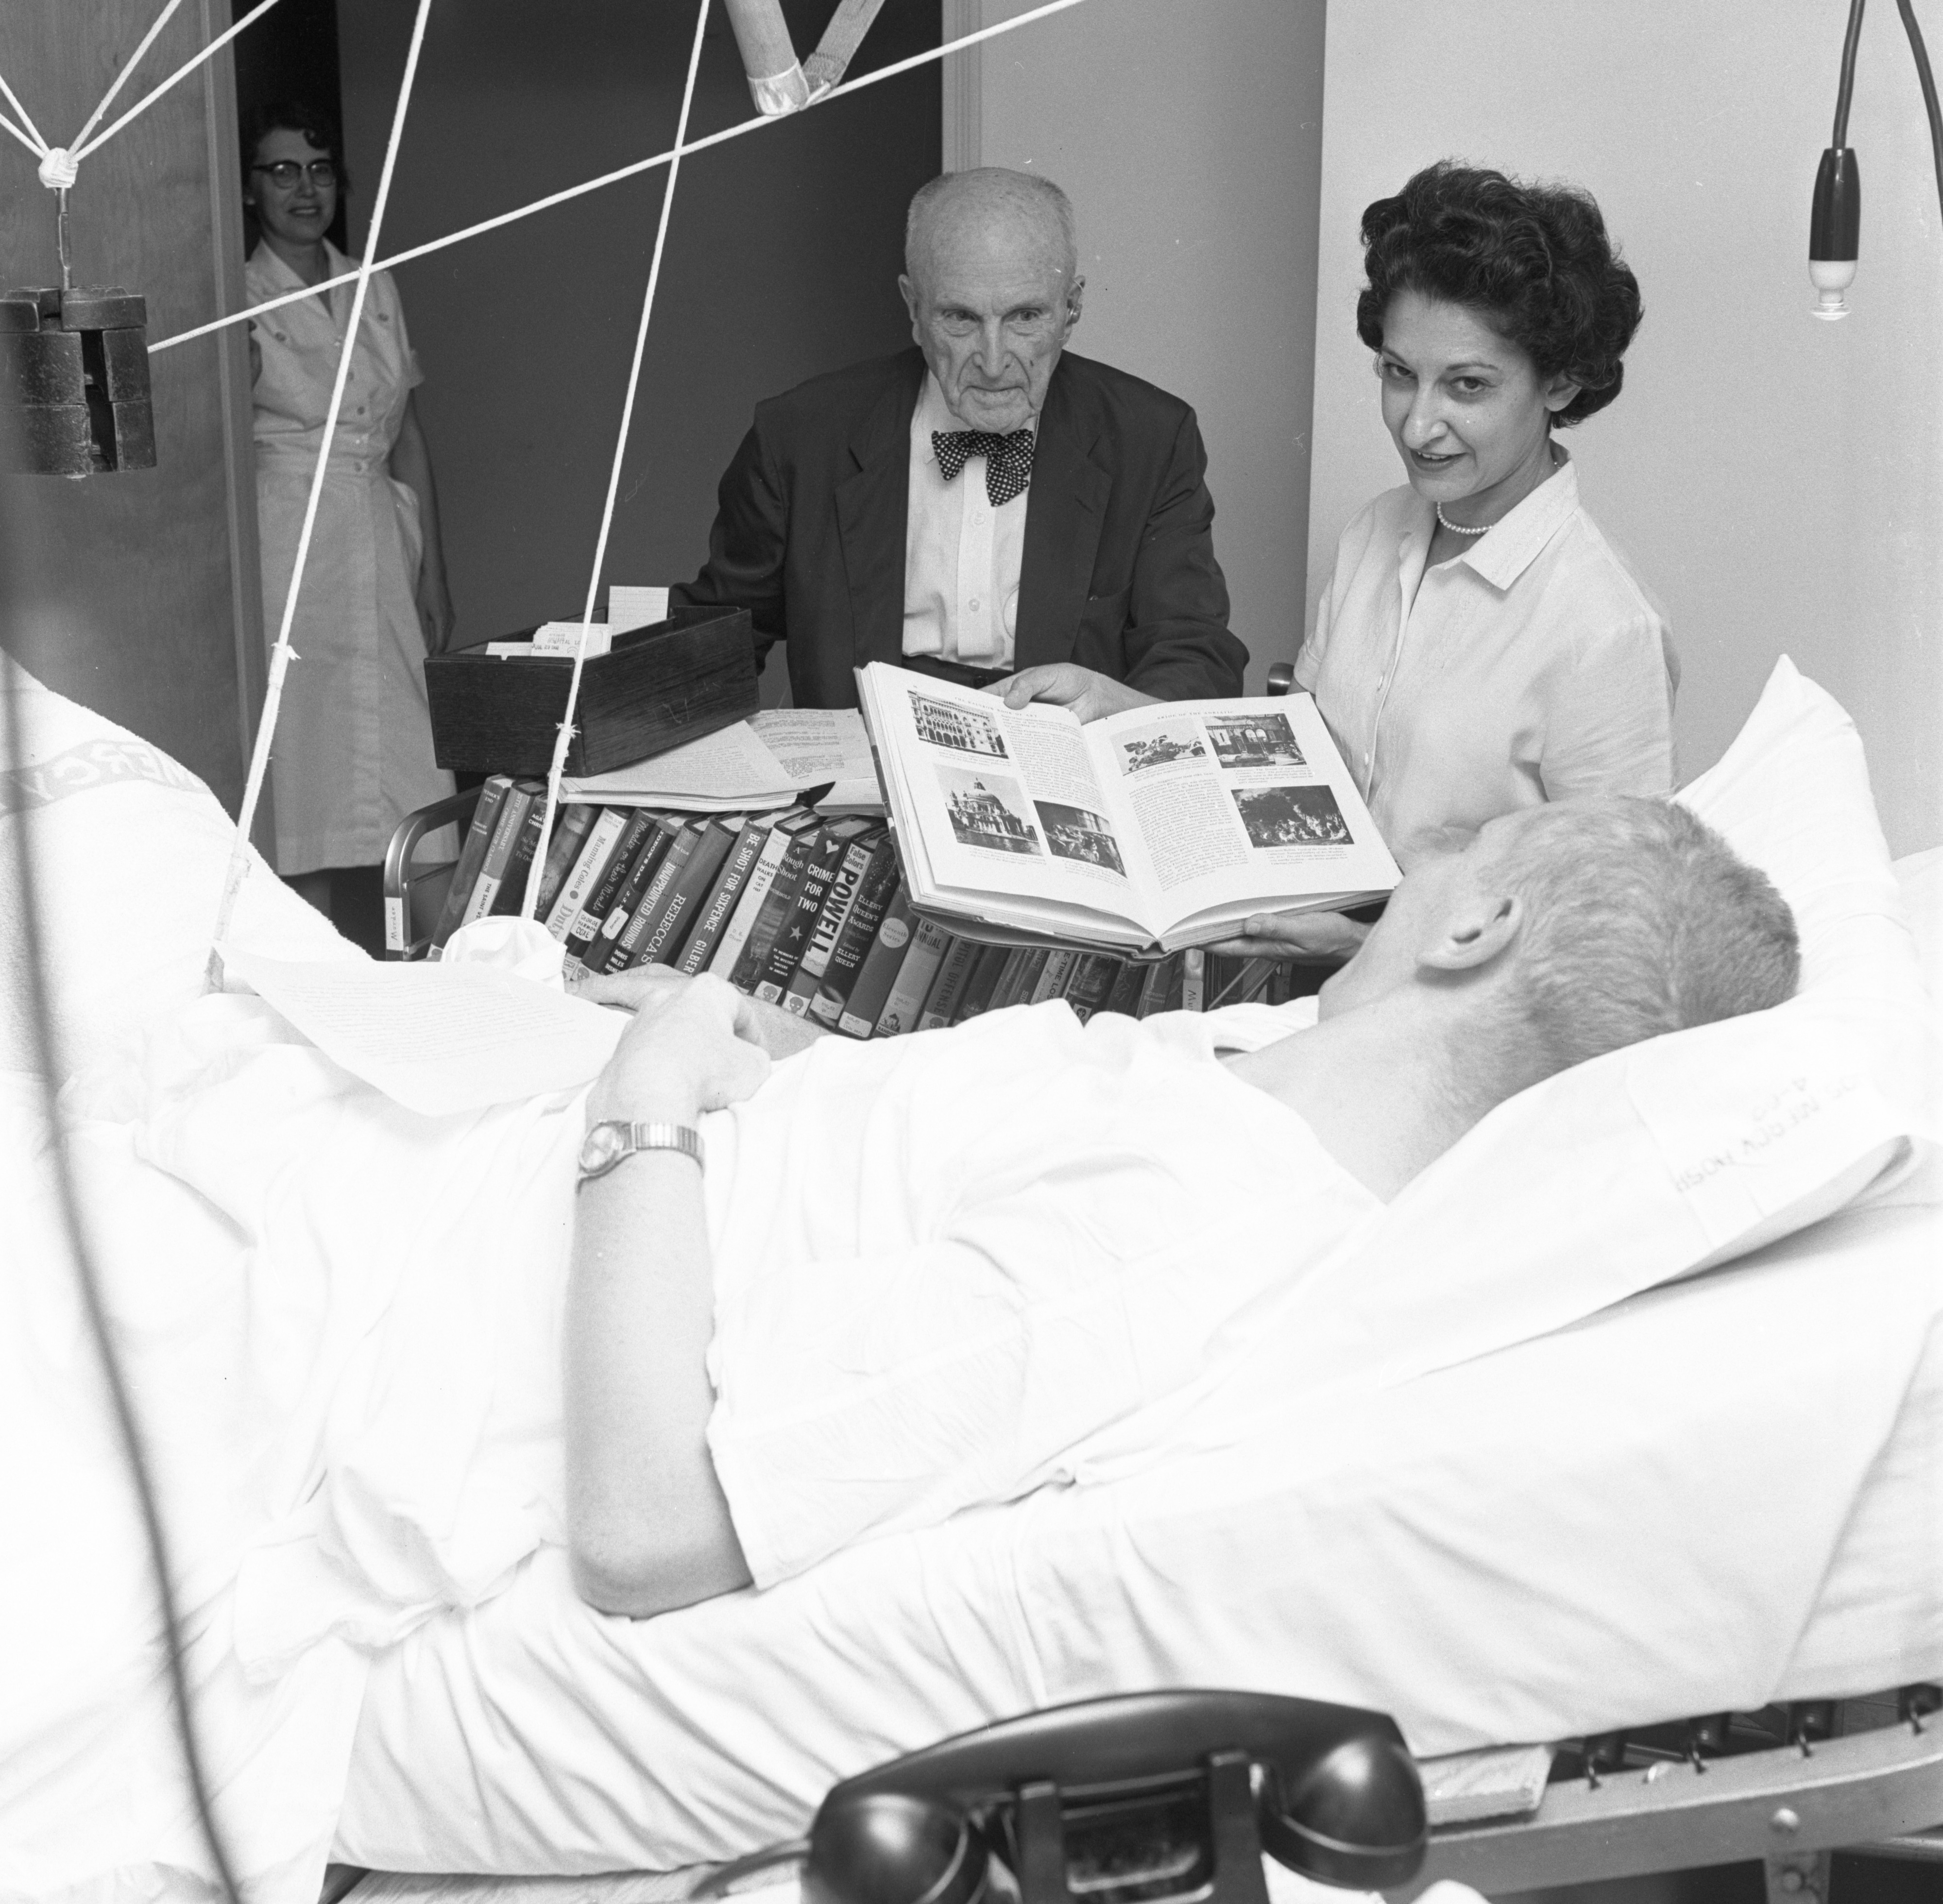 Friends Of The Ann Arbor Public Library Offer Services To A Patient At St. Joseph Mercy Hospital, July 1960 image